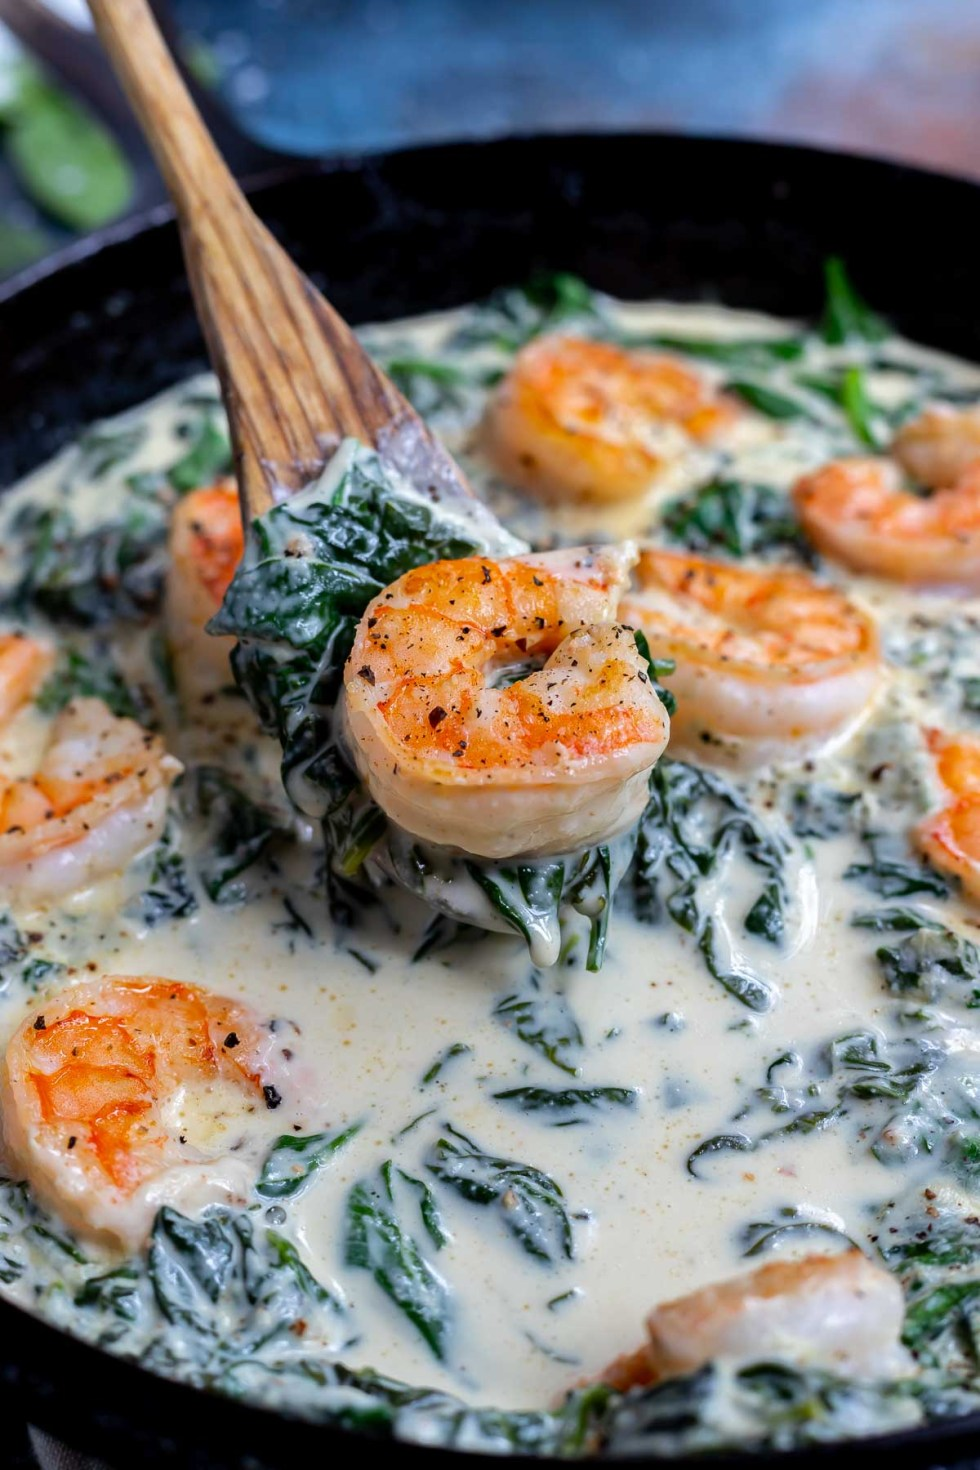 shrimp and spinach in creamy sauce being served with a wooden spoon